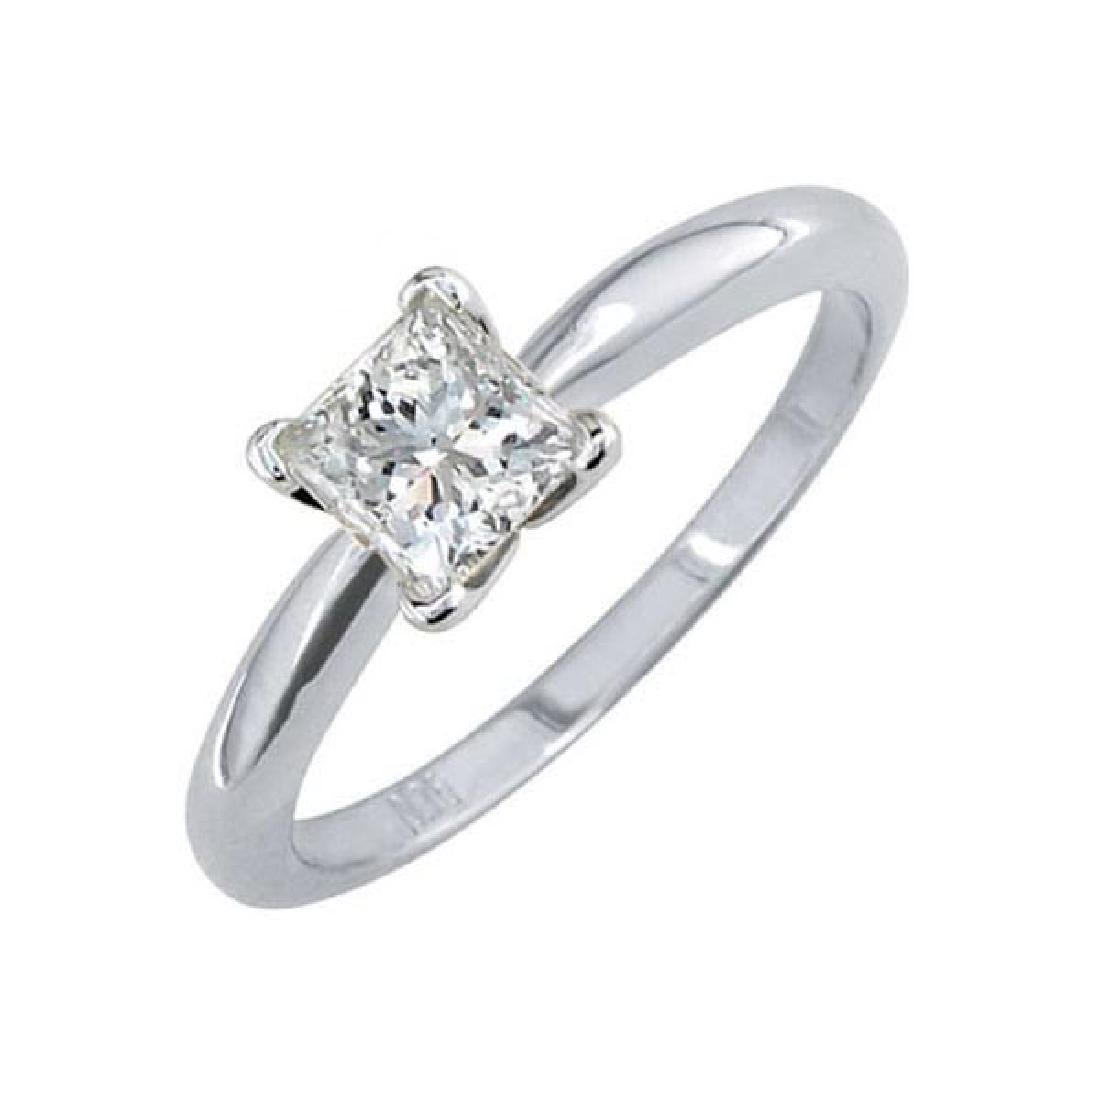 Certified 1.1 CTW Princess Diamond Solitaire 14k Ring I